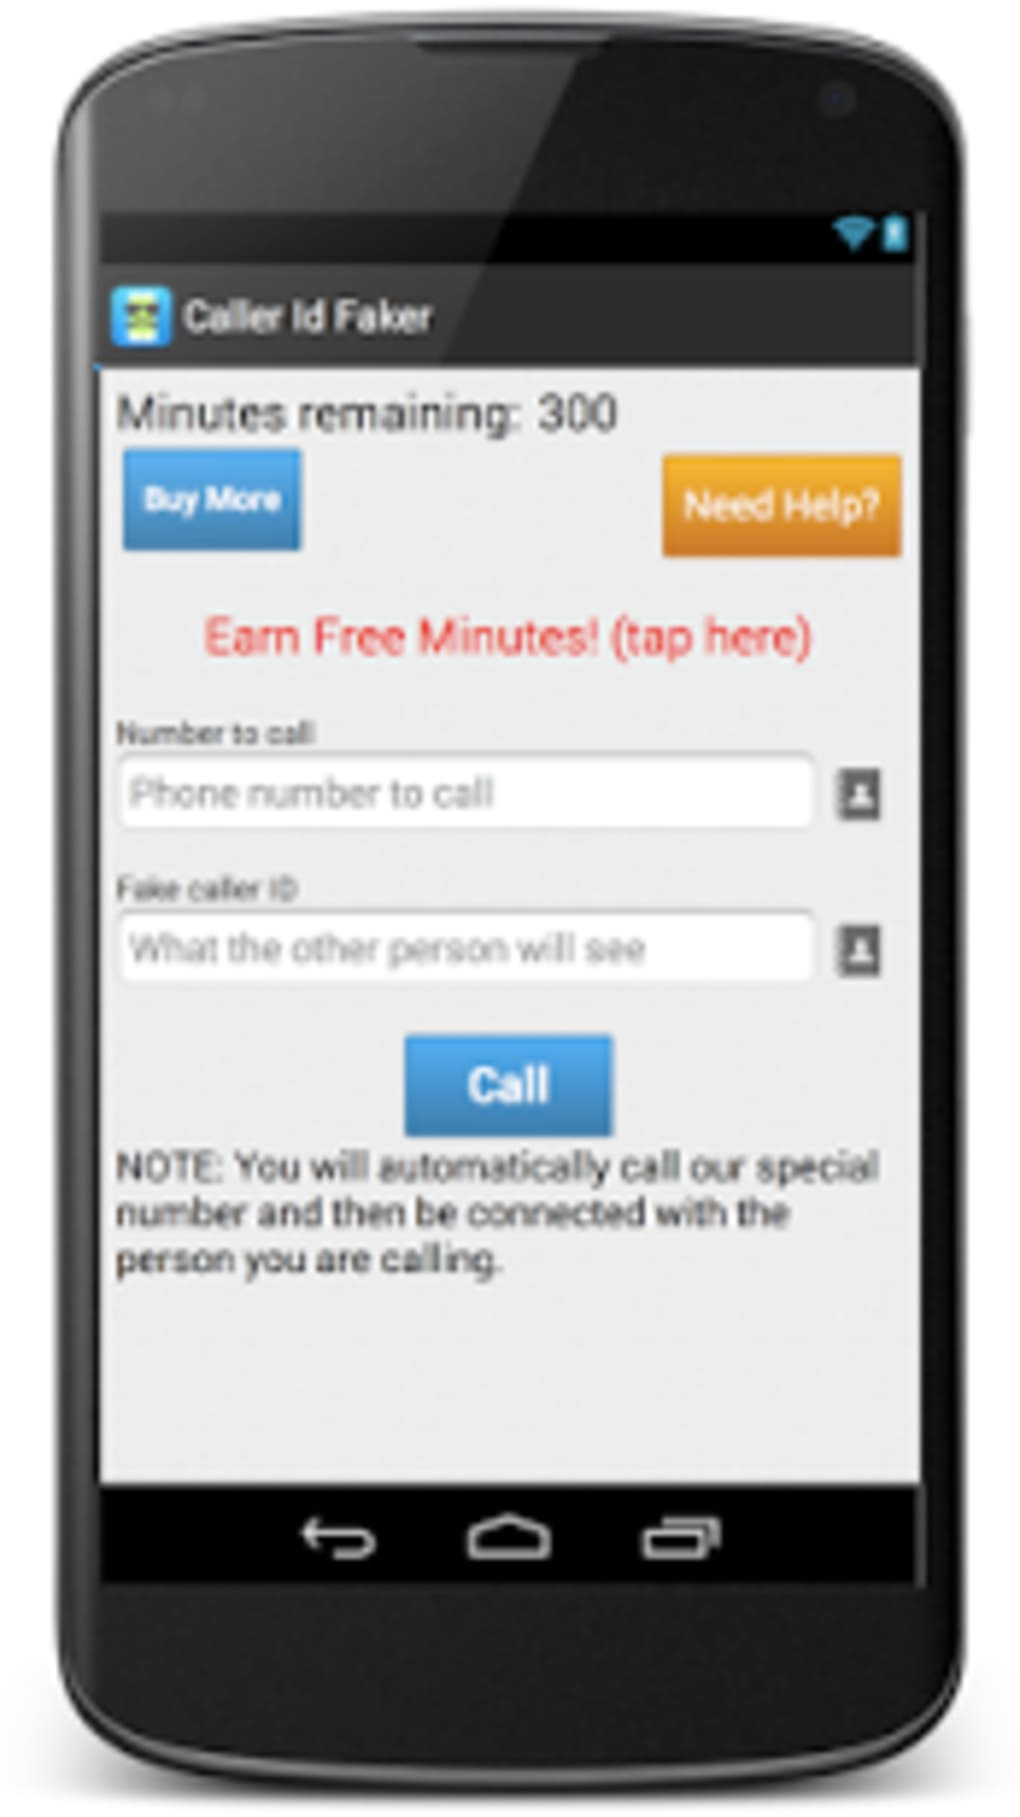 Caller ID Faker for Android - Download